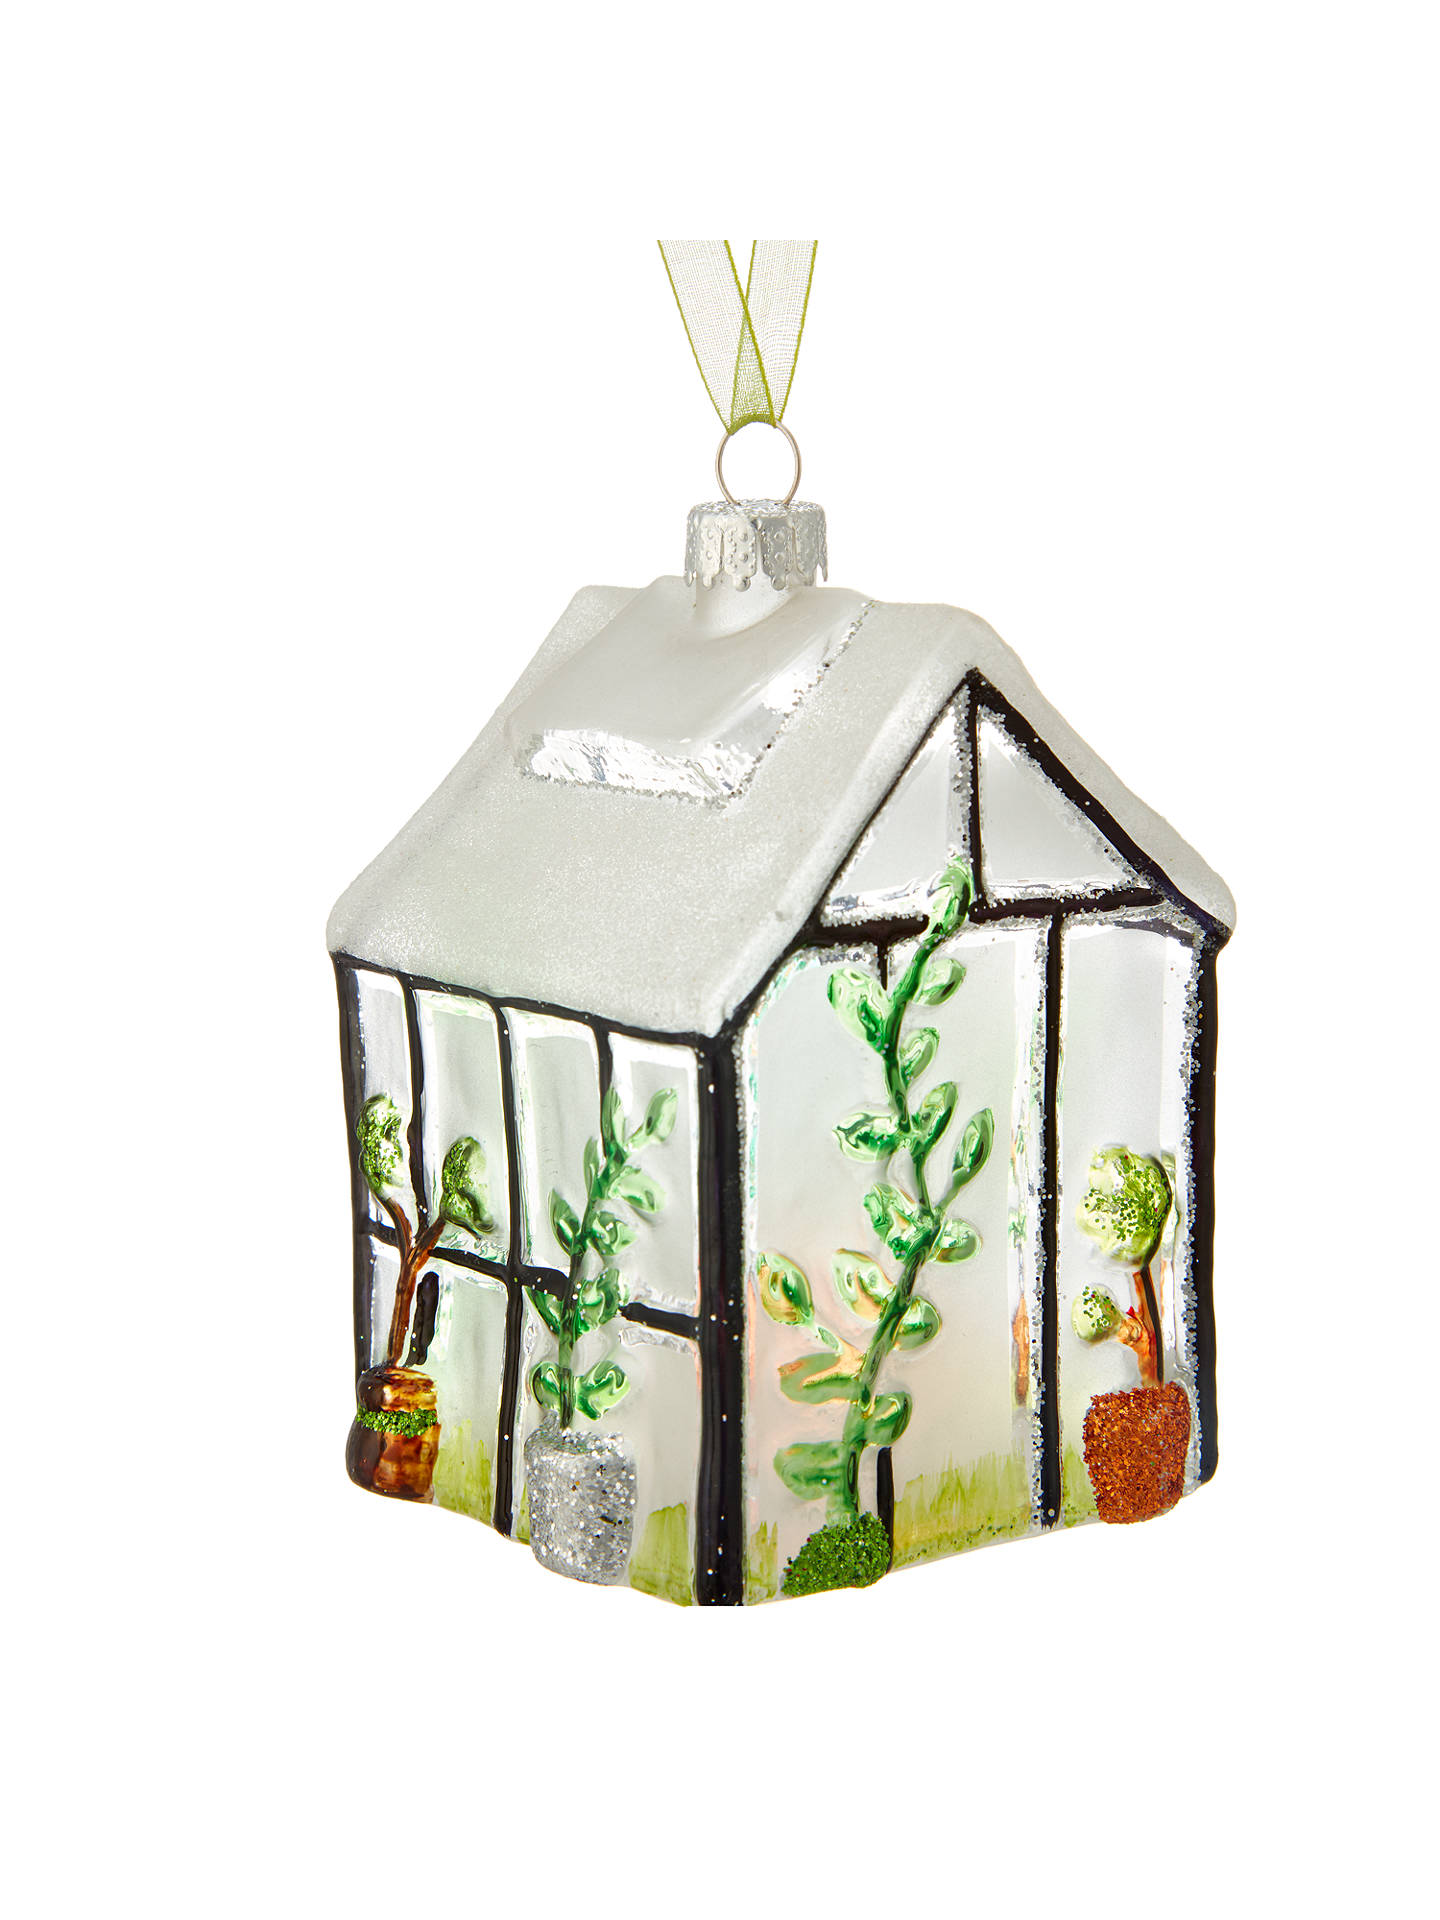 John Lewis Christmas Tree Decorations.John Lewis Into The Woods Greenhouse Tree Decoration At John